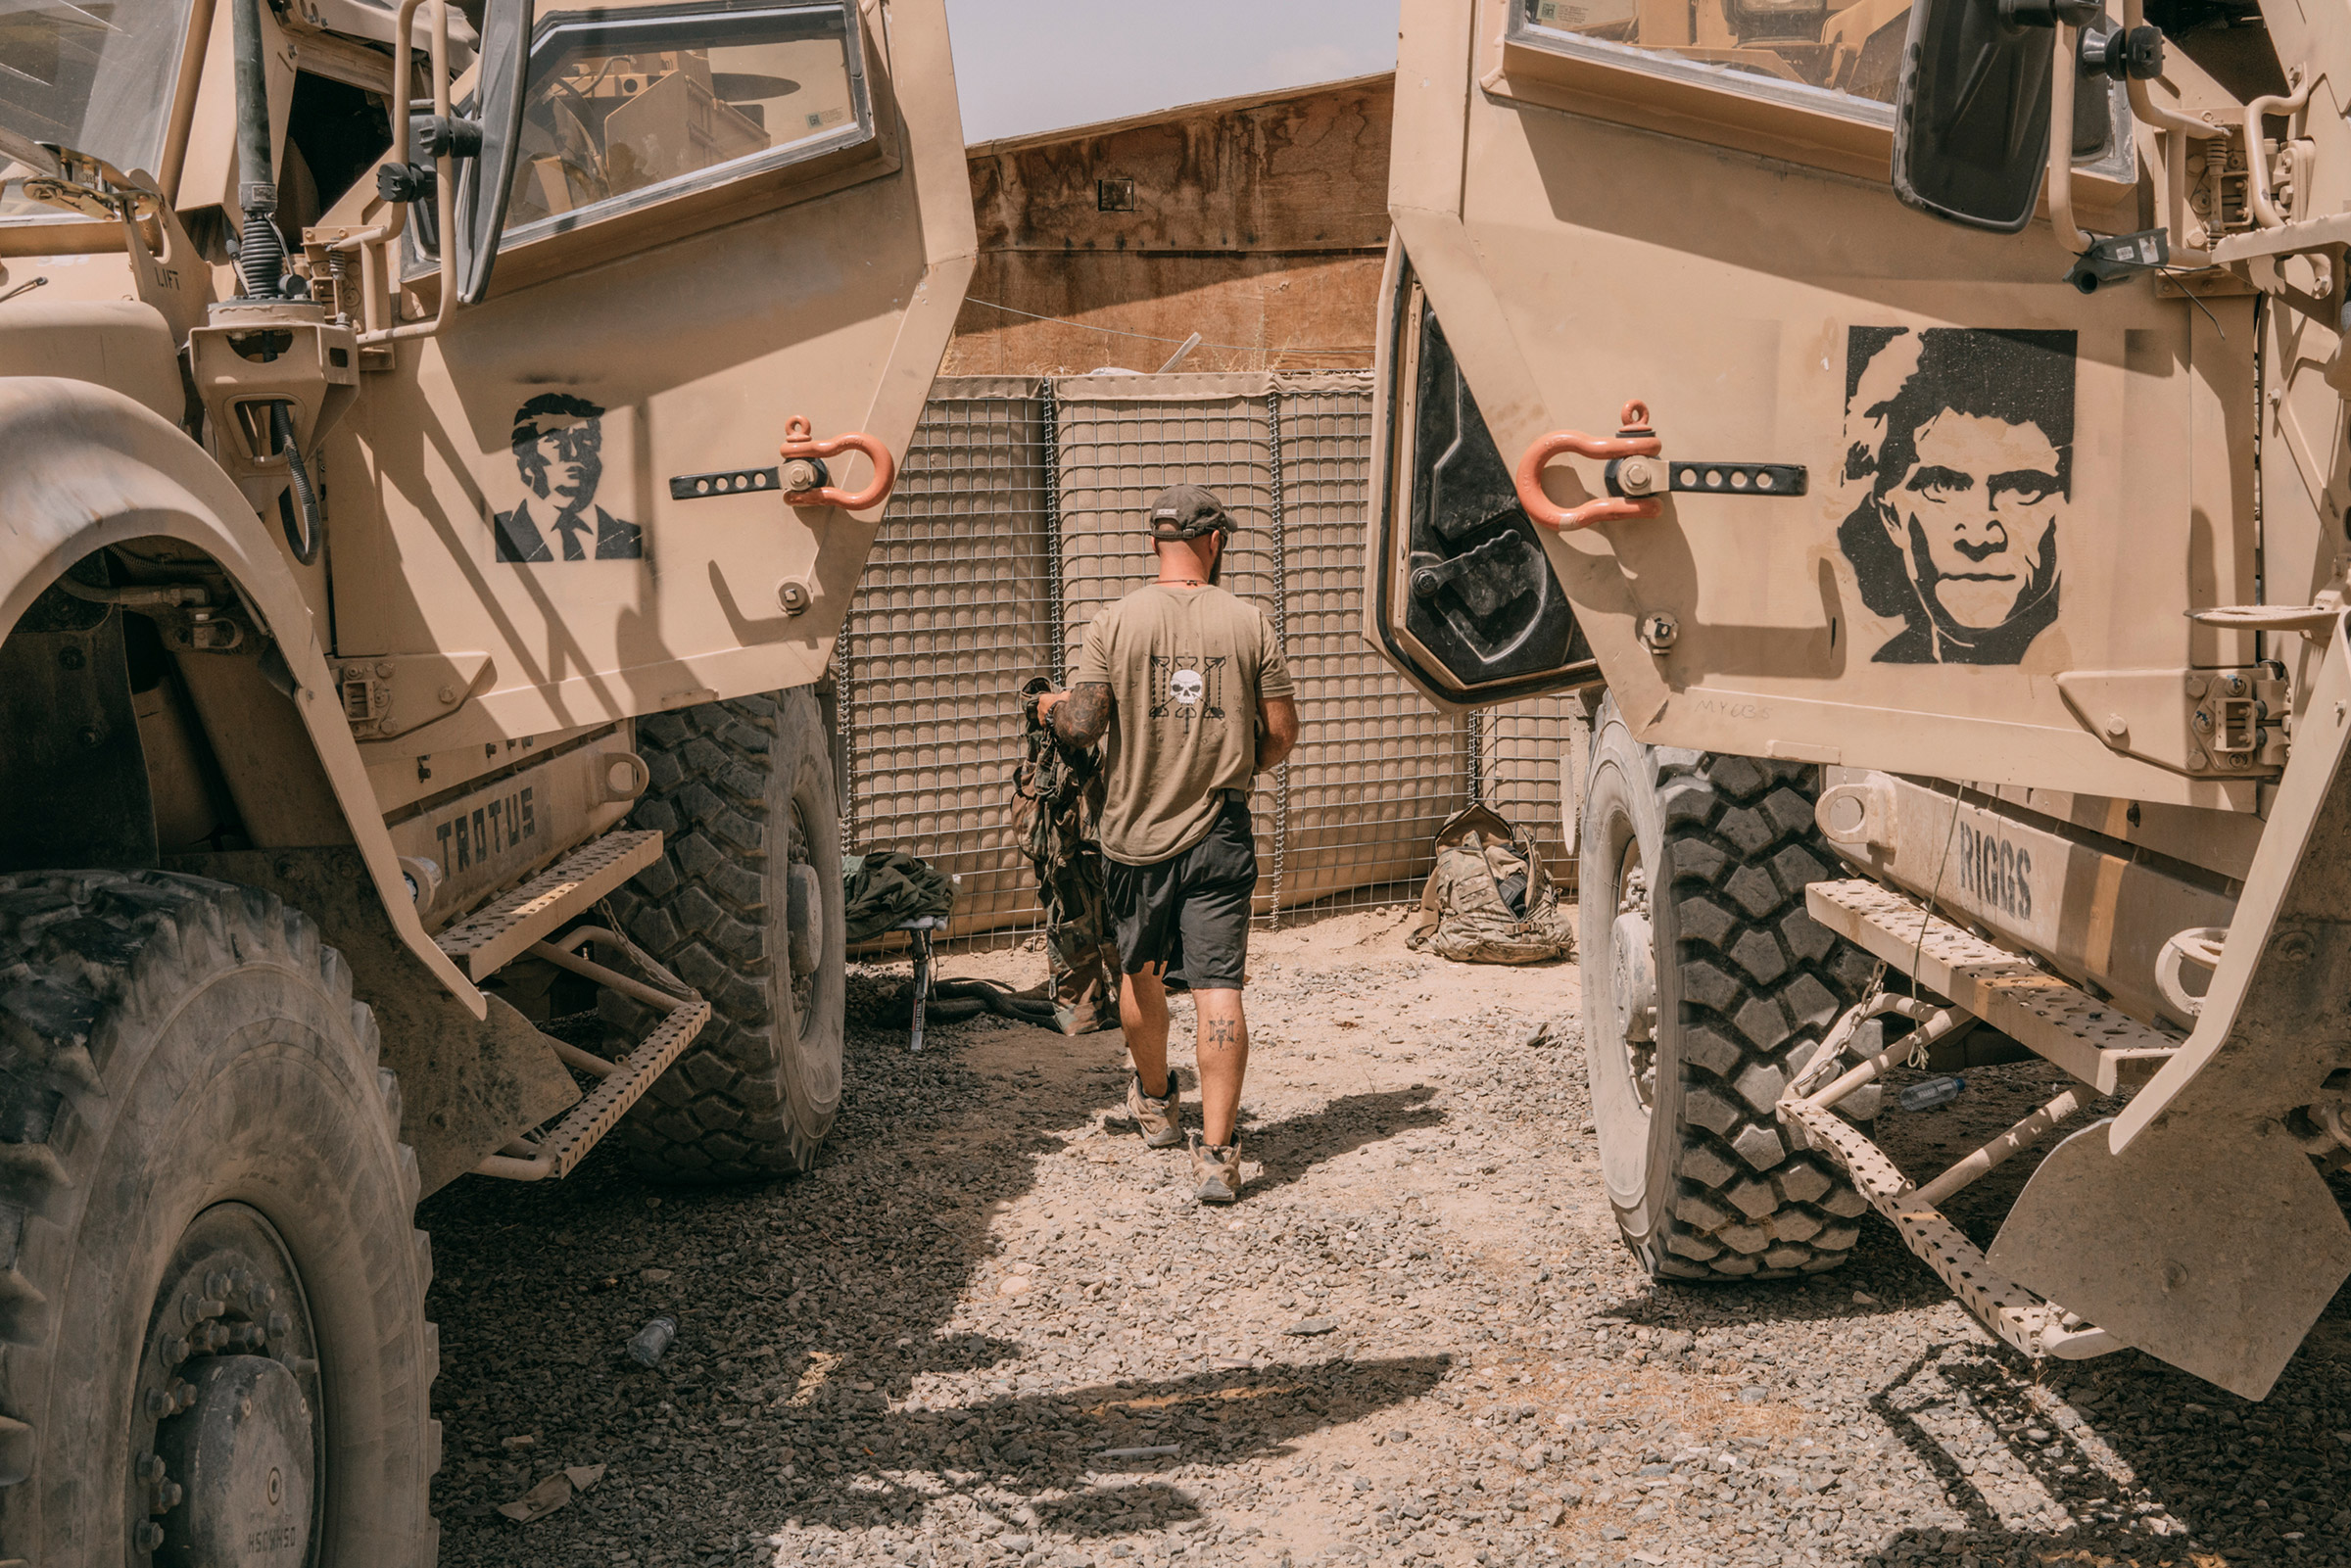 Armored vehicles in Ghazni, Afghanistan, in August 2018 bear stencils of Donald Trump and Mel Gibson